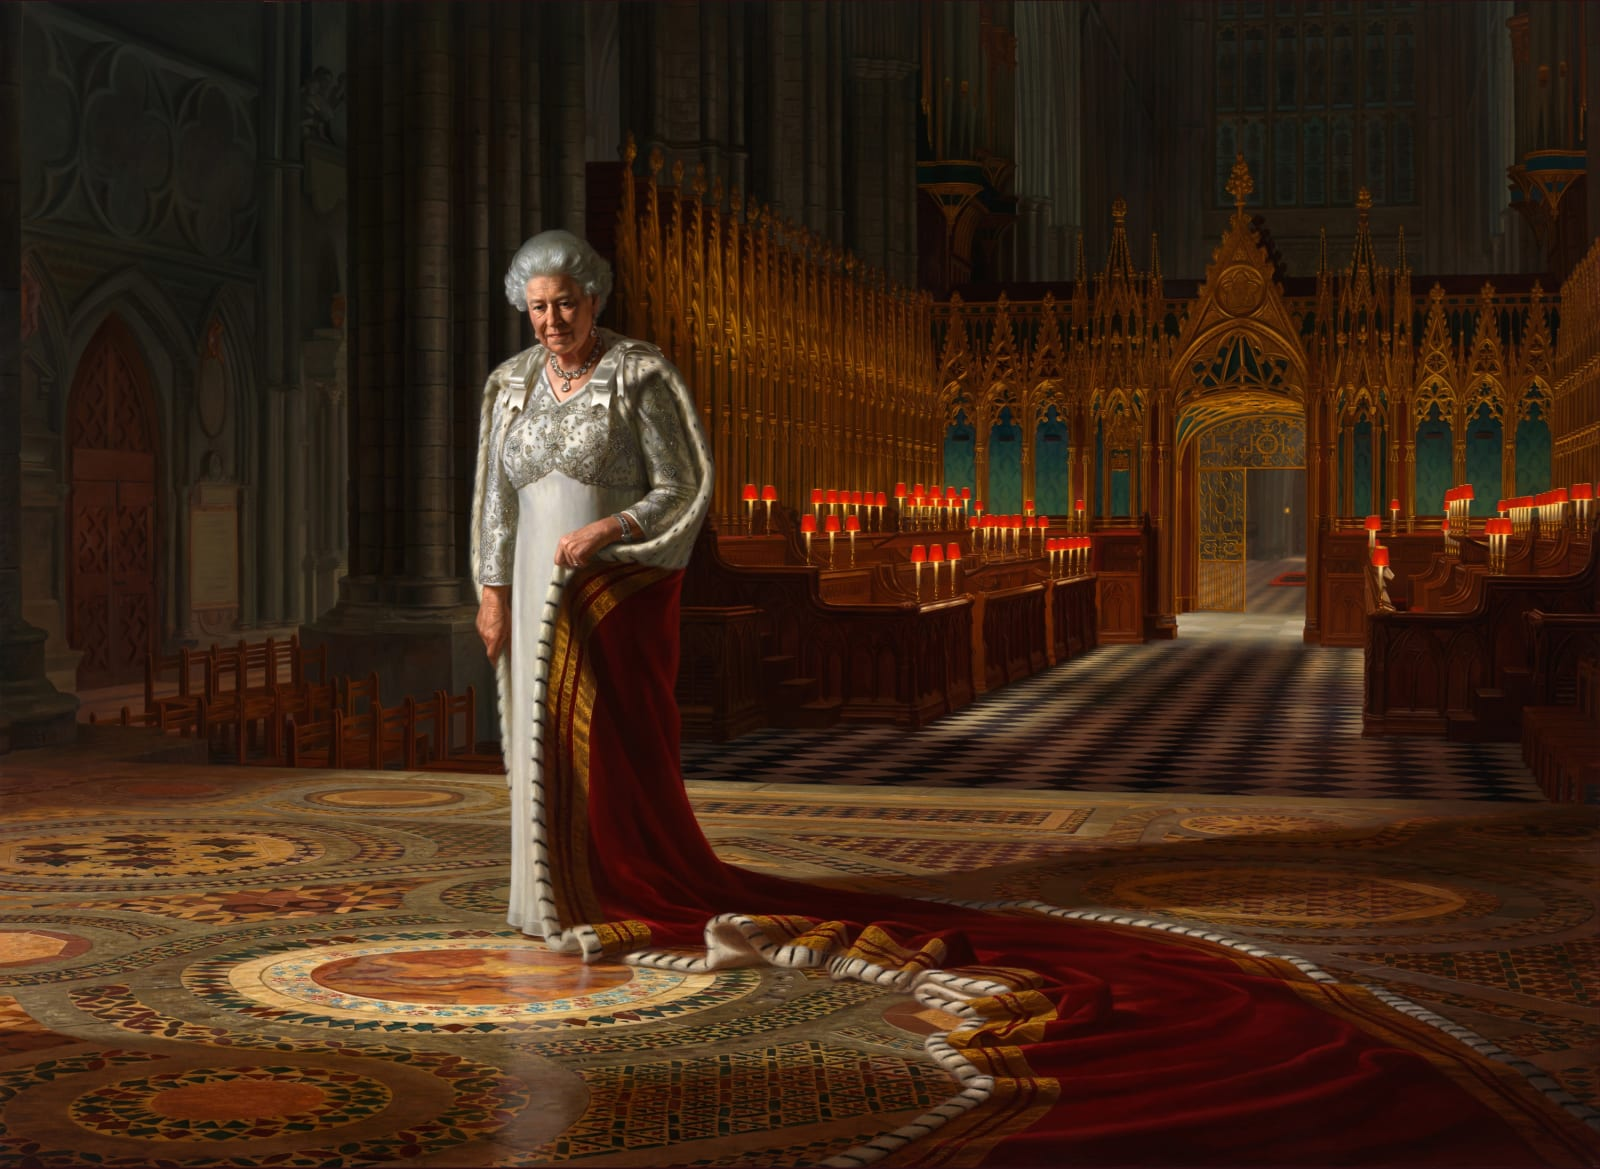 The Coronation Theatre: Her Majesty Queen Elizabeth II 2012 Oil on canvas 250 x 342 cm Westminster Abbey Collection